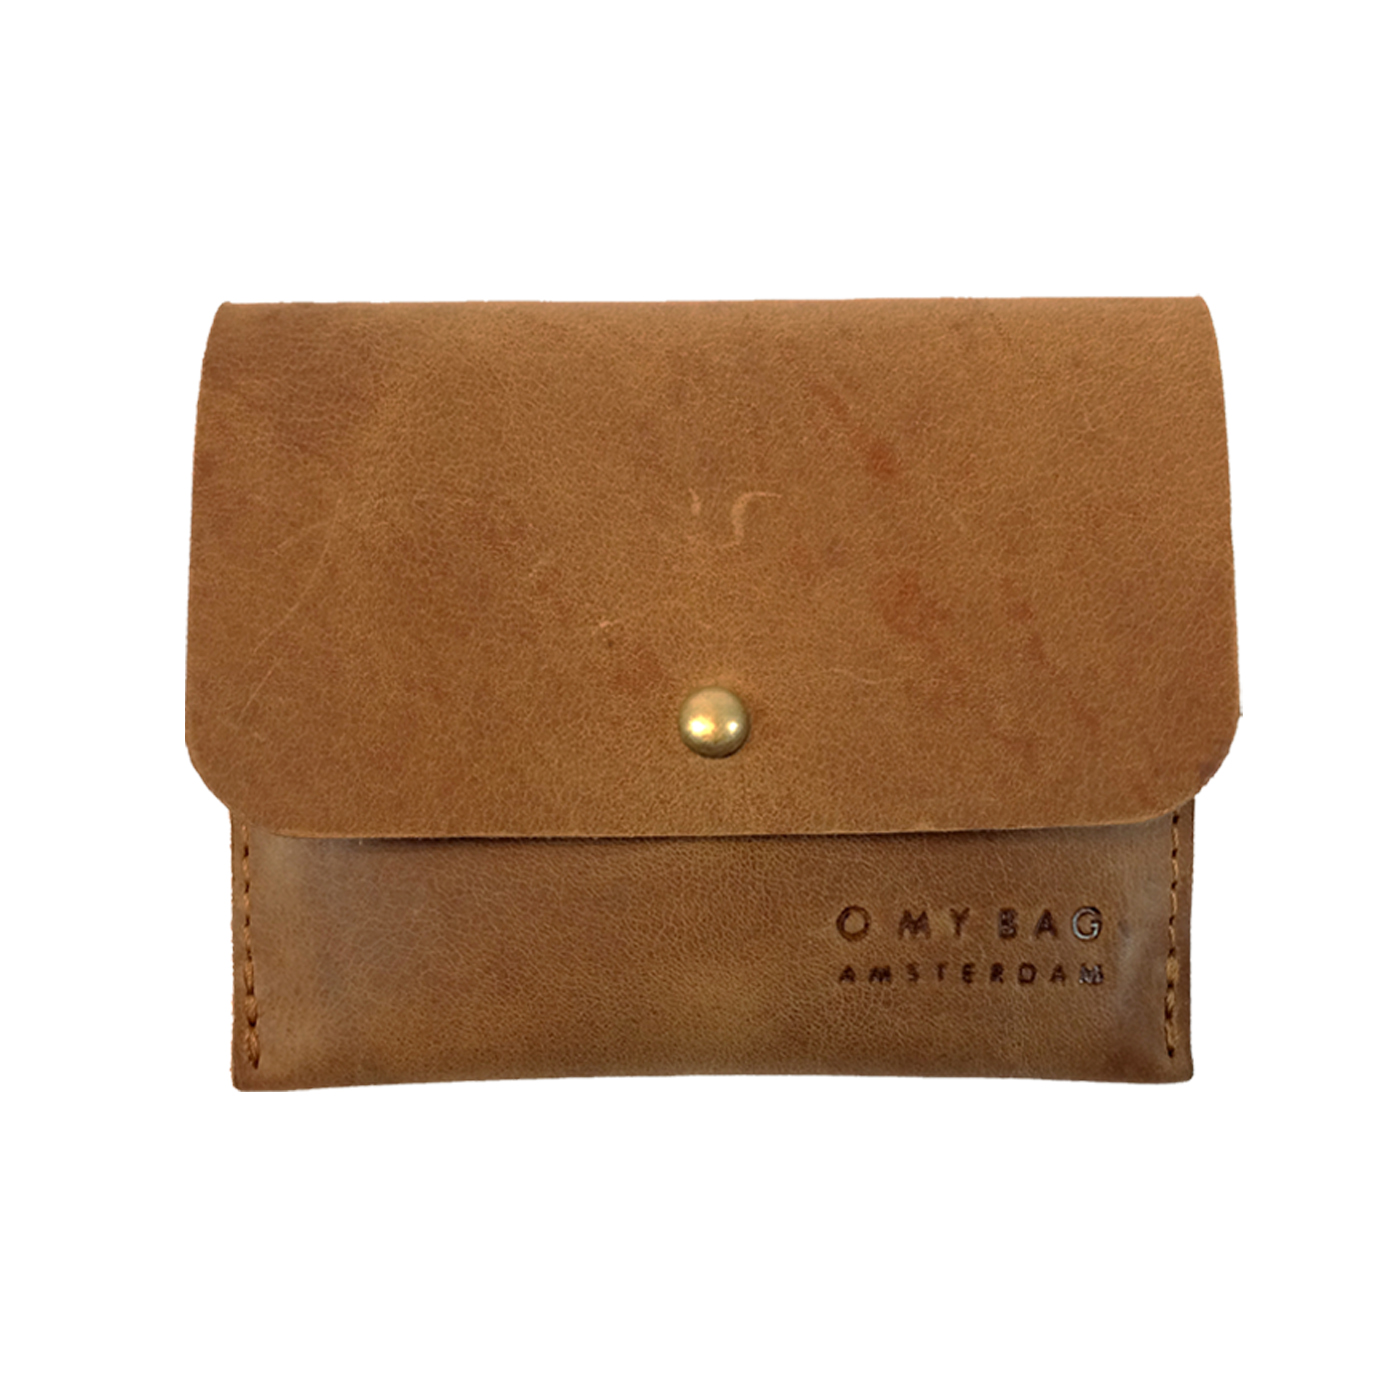 Cardholder Vegan leather